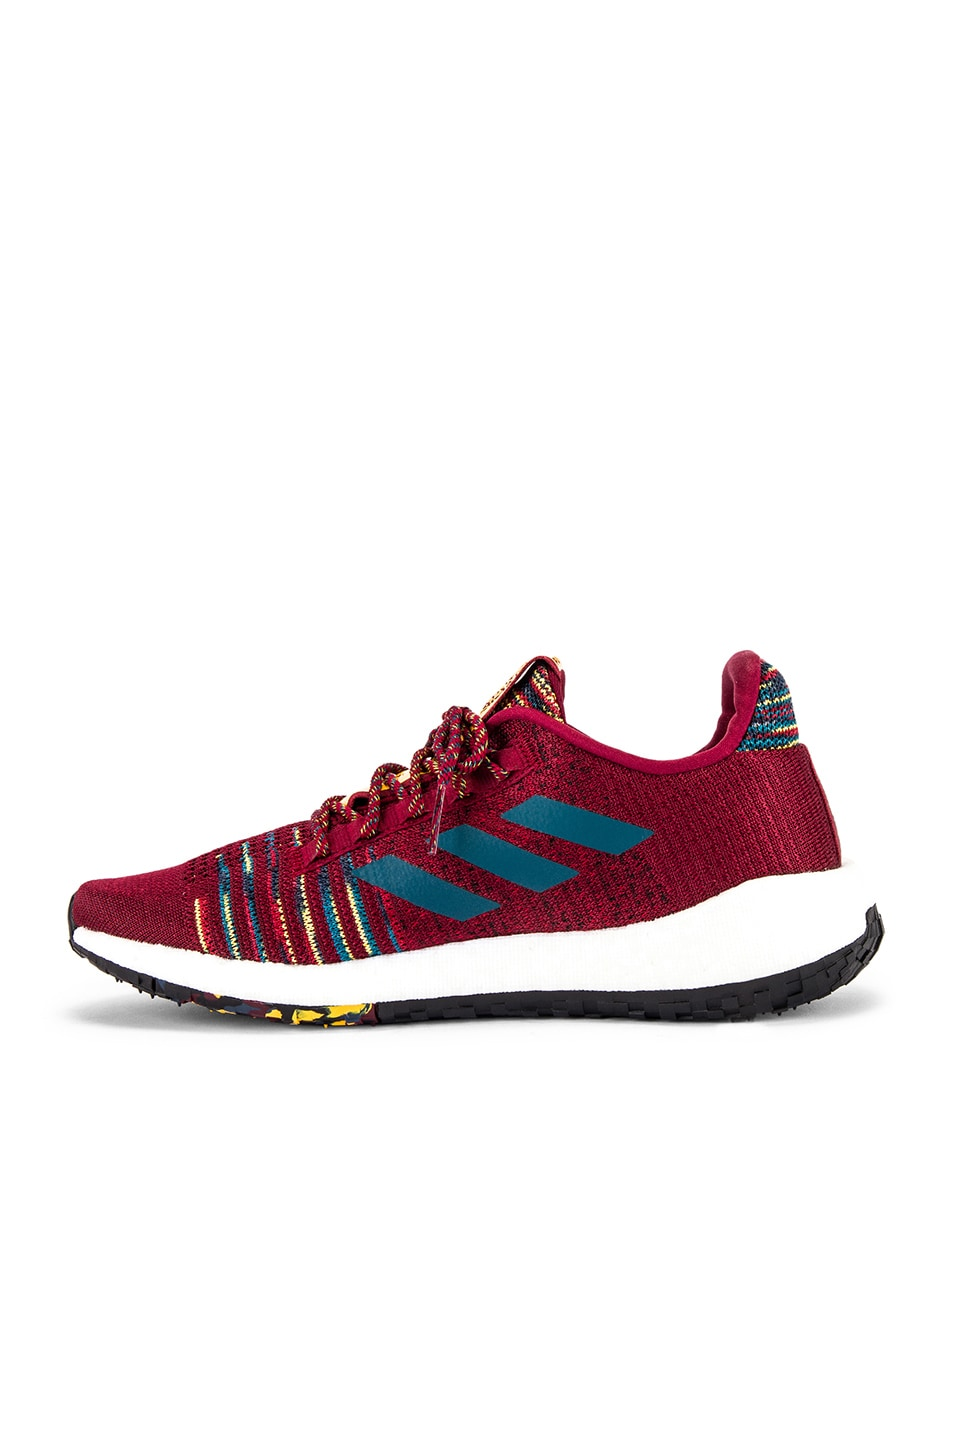 Image 5 of adidas by MISSONI Pulseboost HD in Collegiate Burgundy & Tech Mineral & Core Black